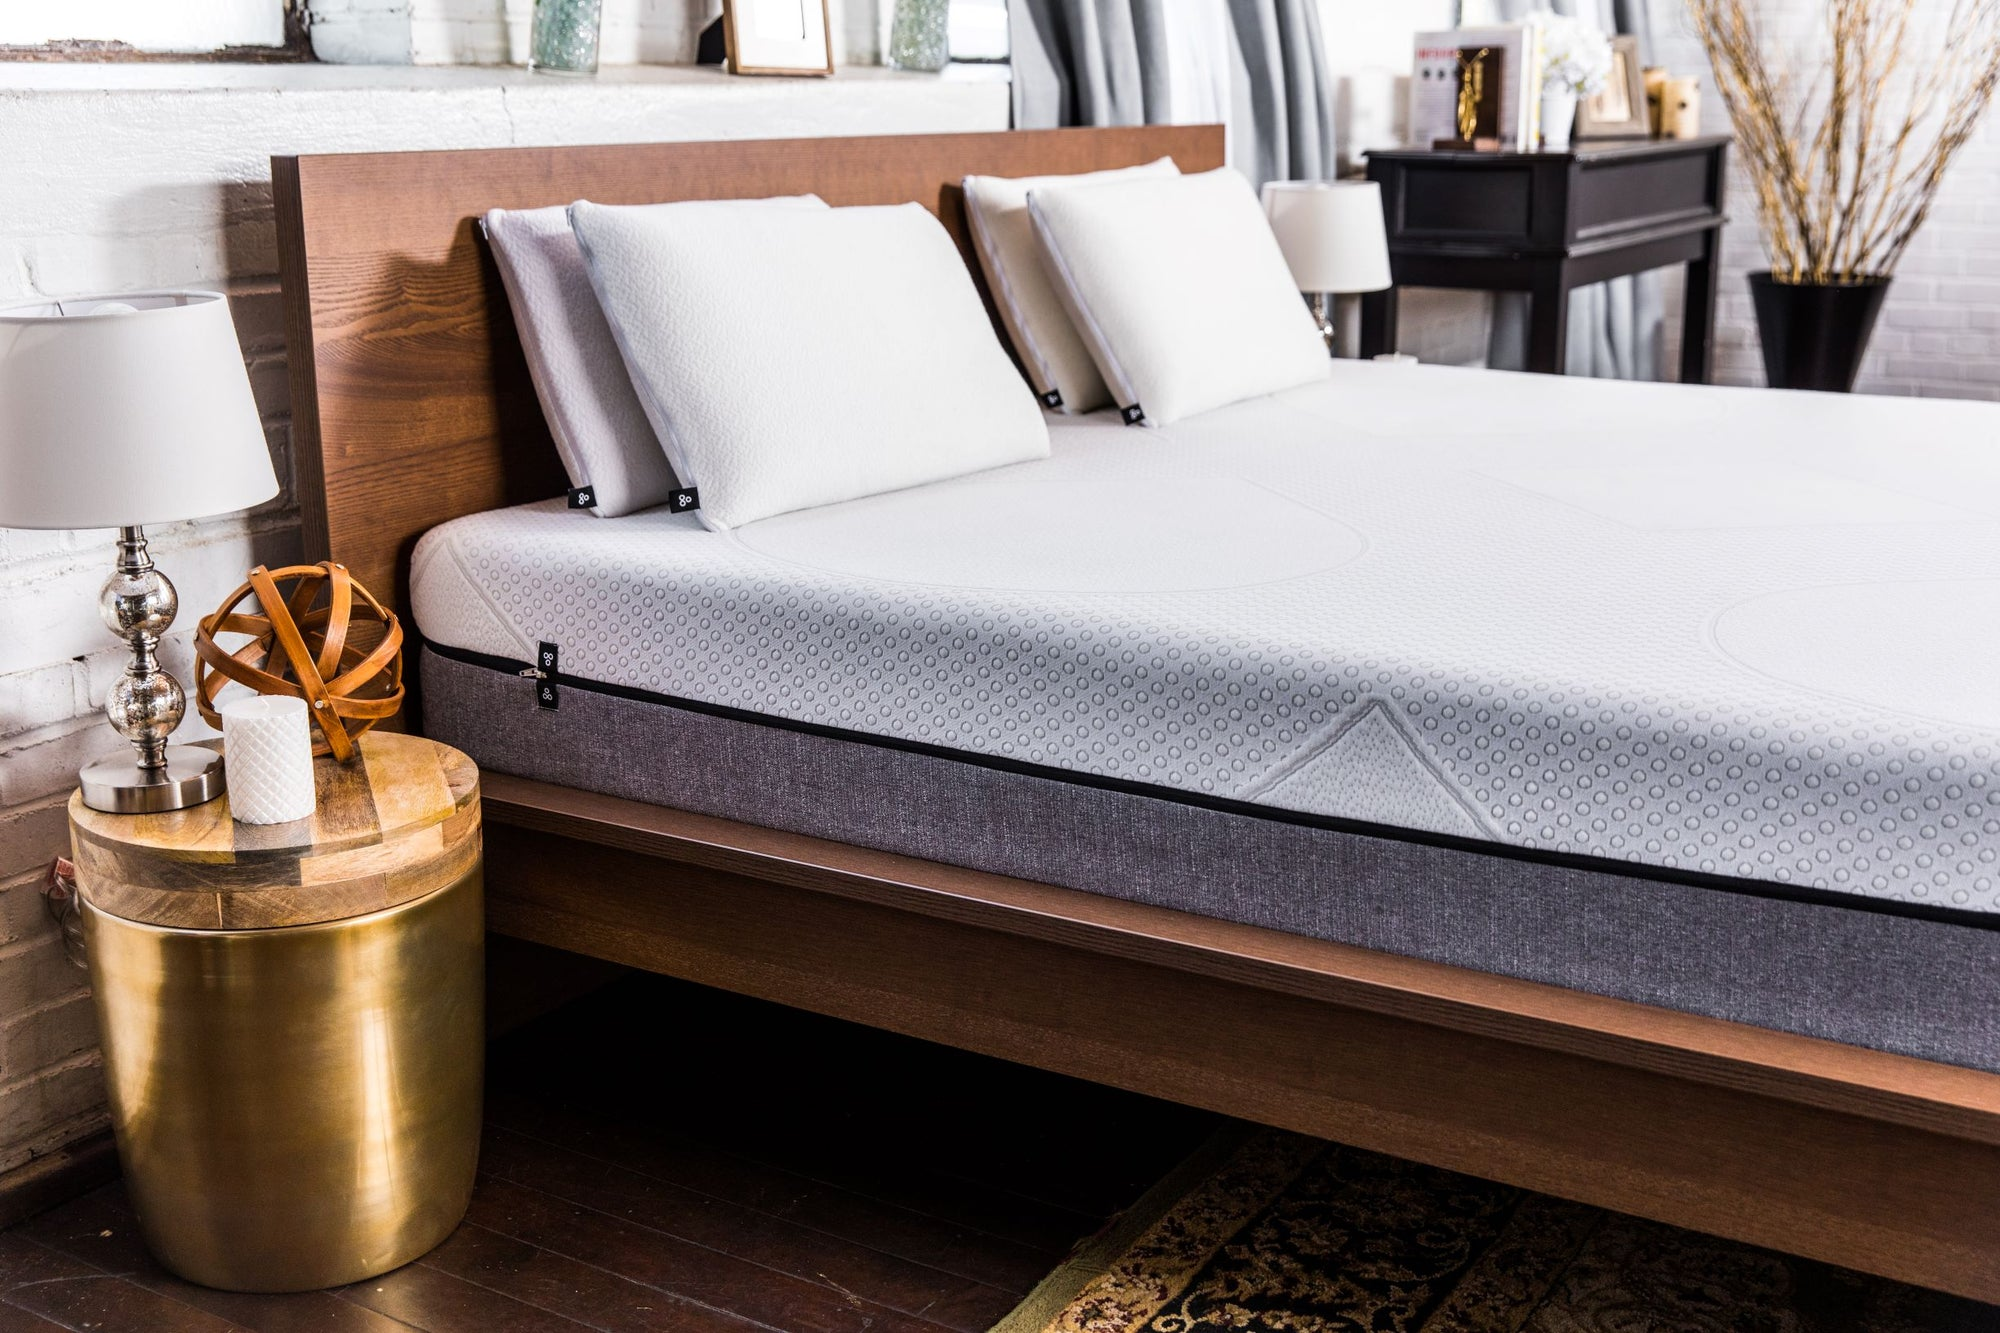 Is a Queen Size Bed for You? - Queen Size Bed Dimensions